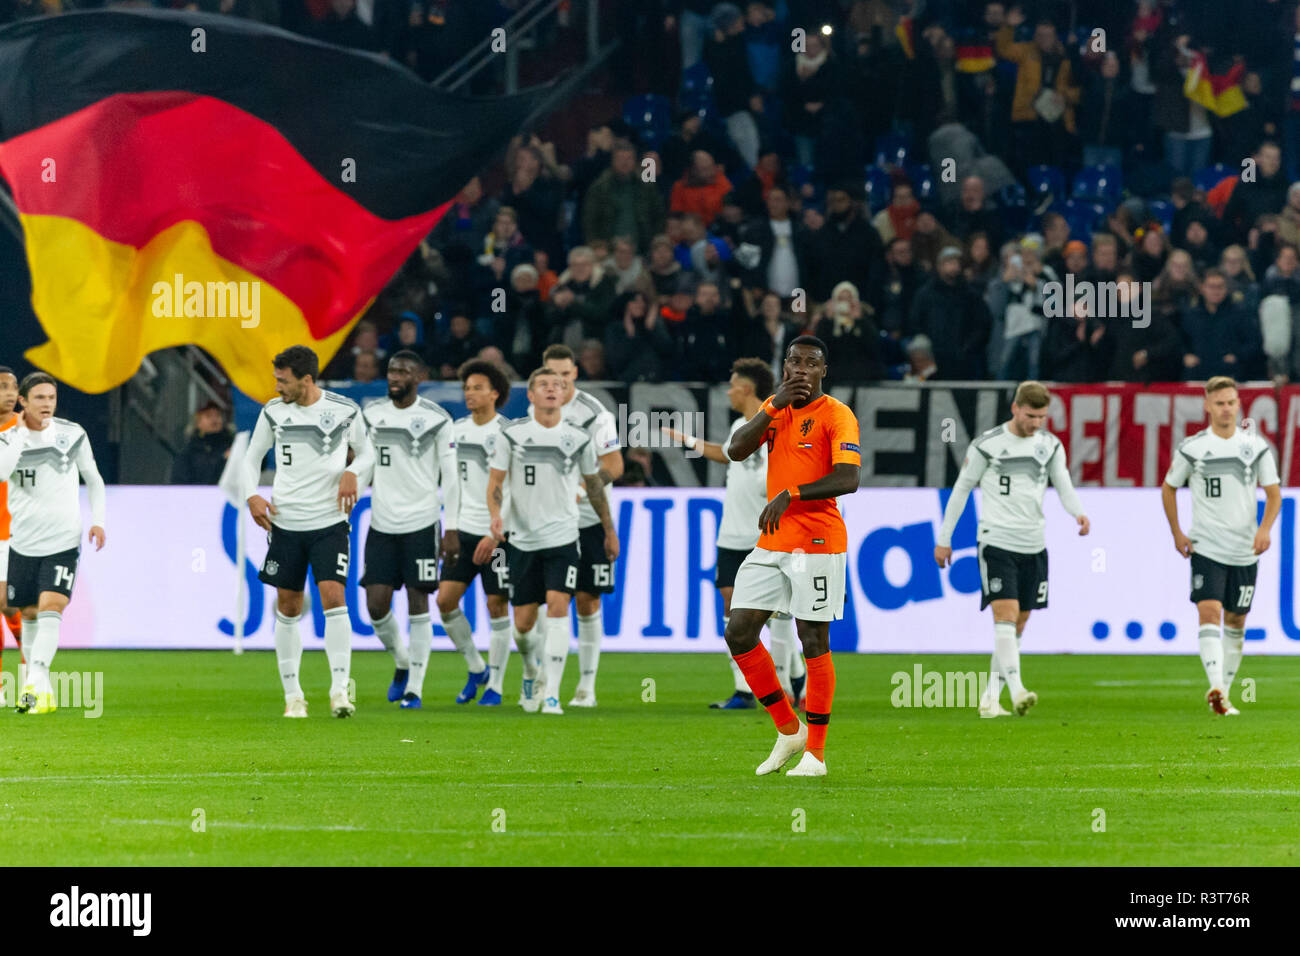 Gelsenkirchen, Germany 18 November 2018 UEFA Nations League Germany - The Netherlands    L-R Quyincy Promes (Netherlands) - Stock Image